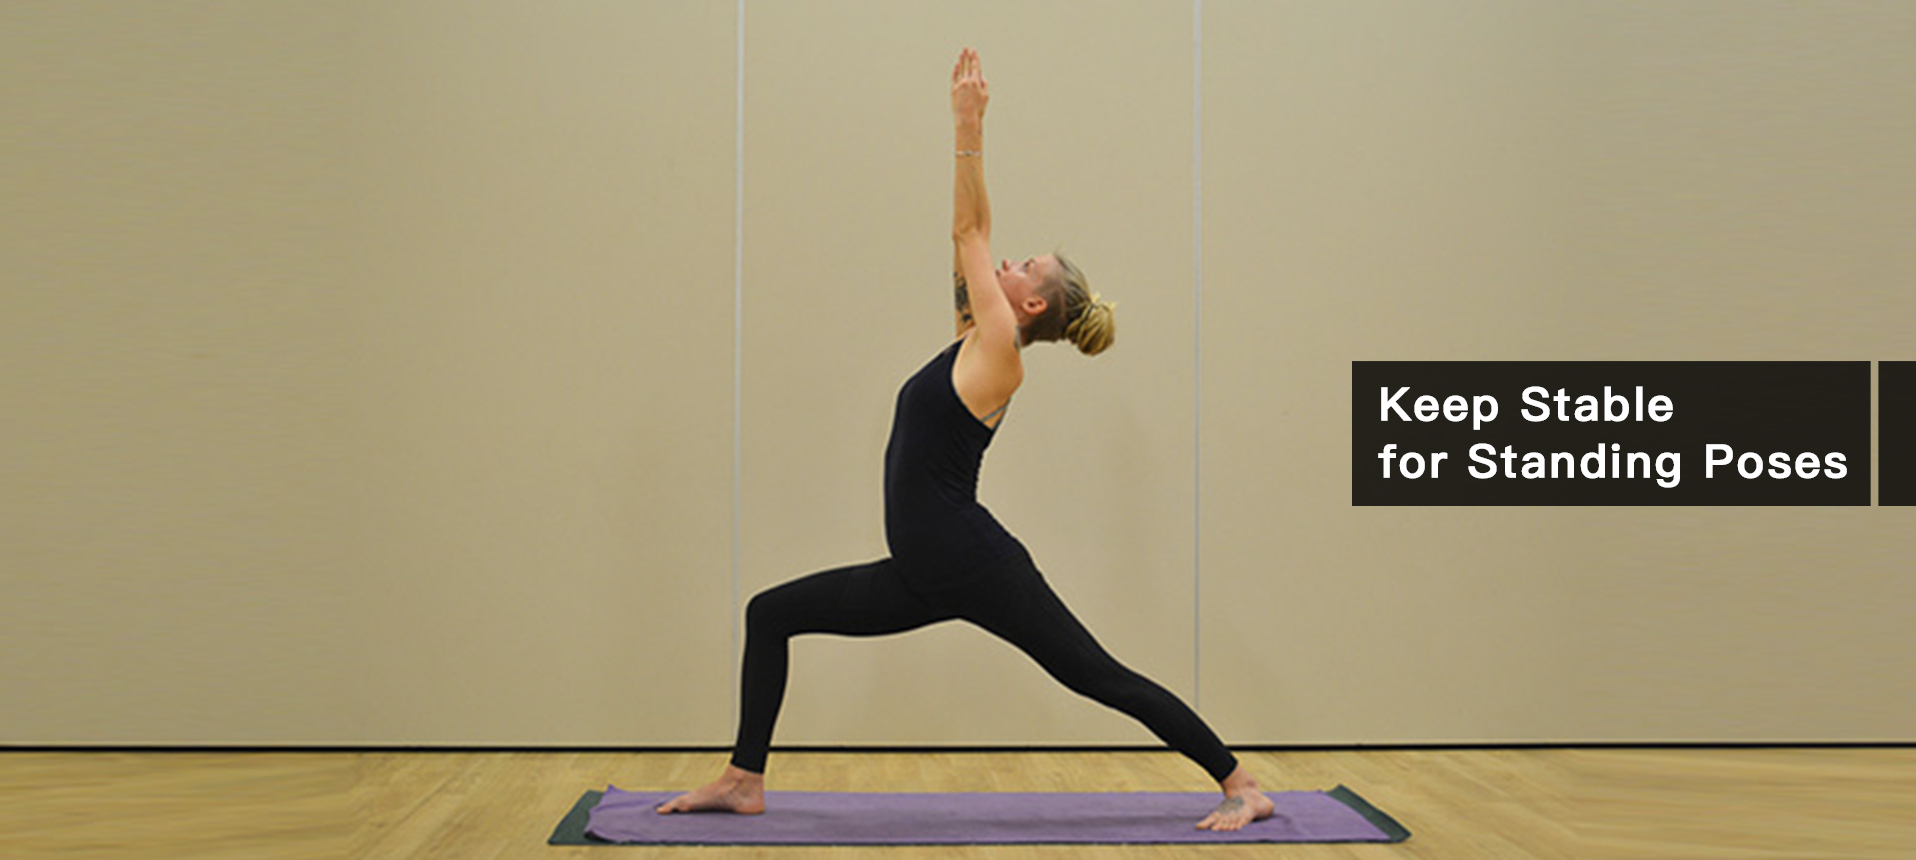 Keep Stable with Yoga Mat